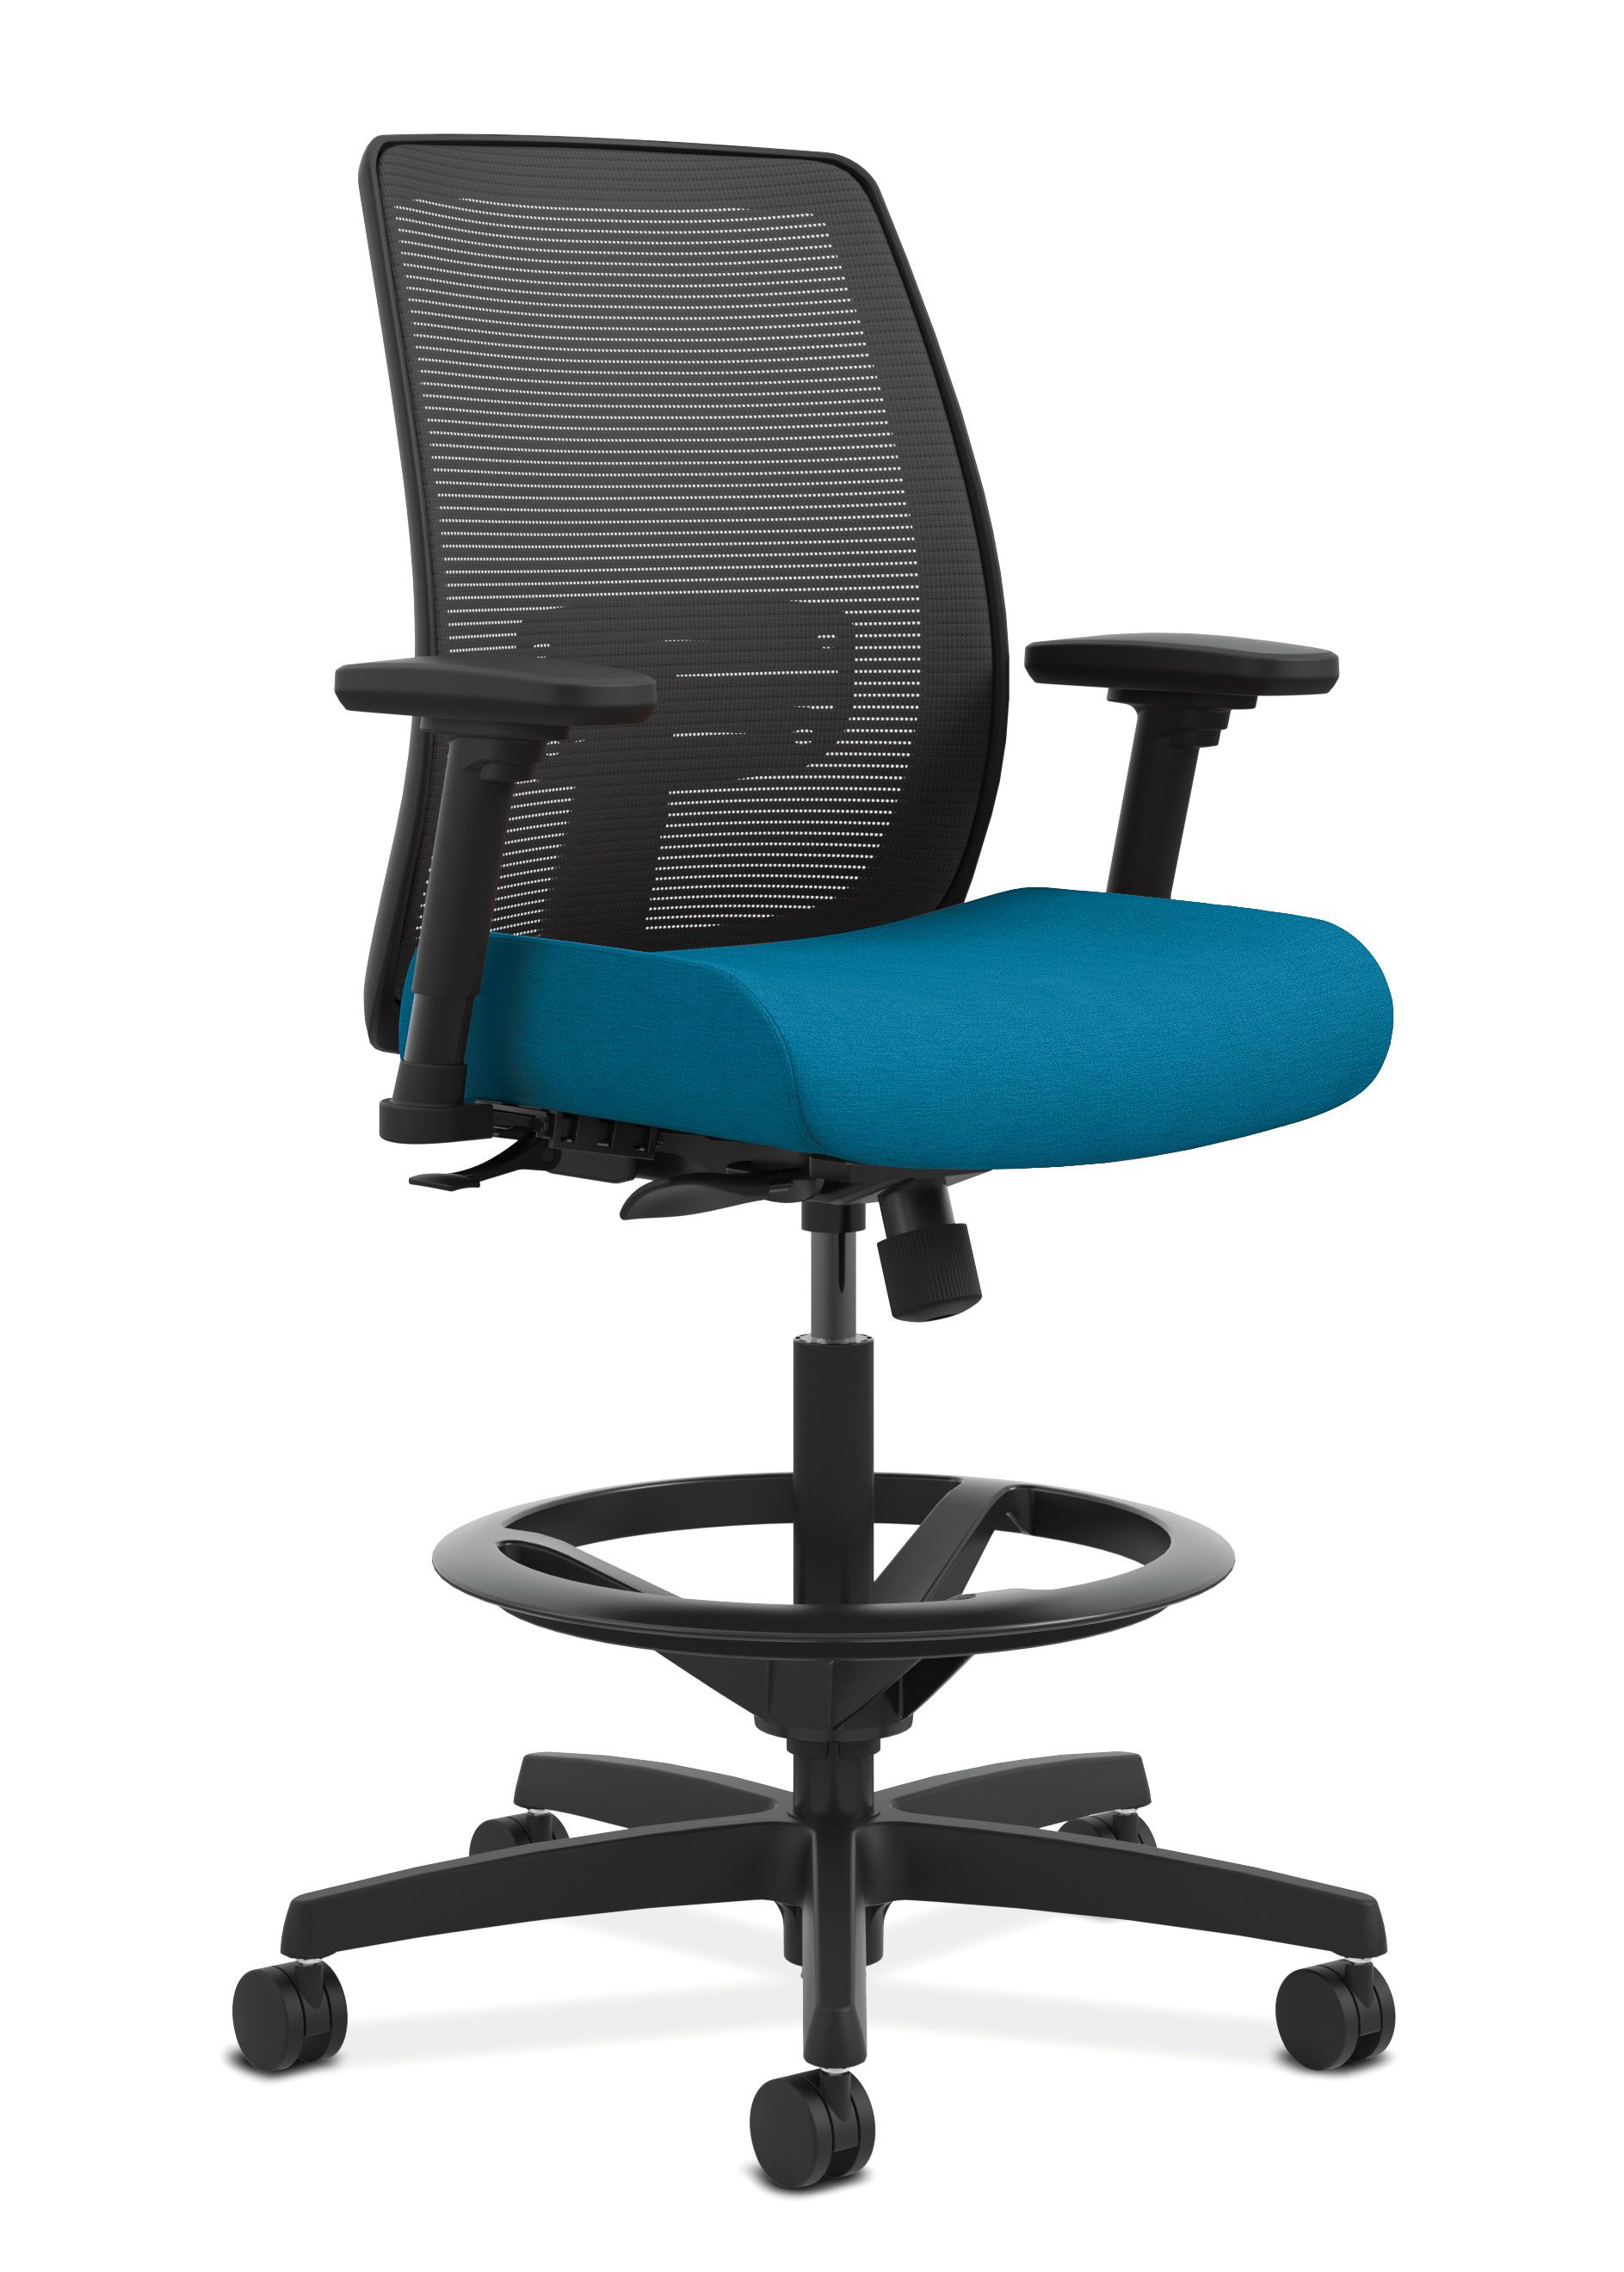 endorse mesh back task stool advanced ergonomics and customizable